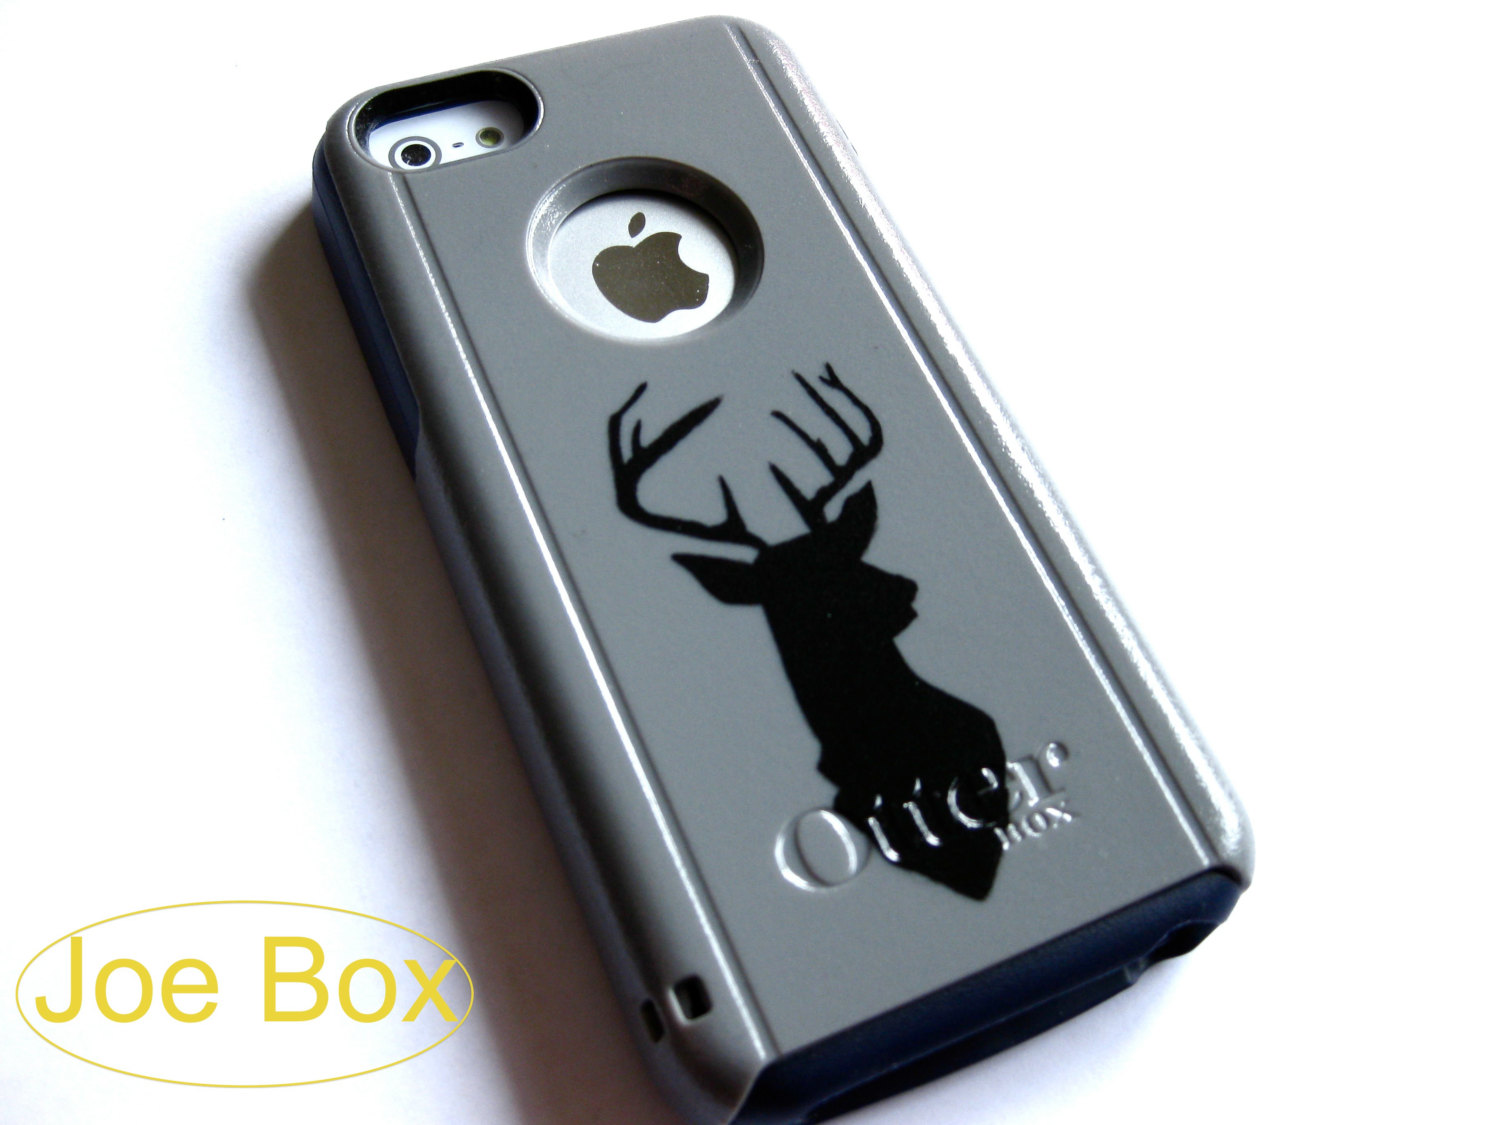 Otterbox iphone 5c case, Iphone 5c case, Glitter case, Iphone cover, custom otterbox iphone 5c, gift, Deer iphone 5c case